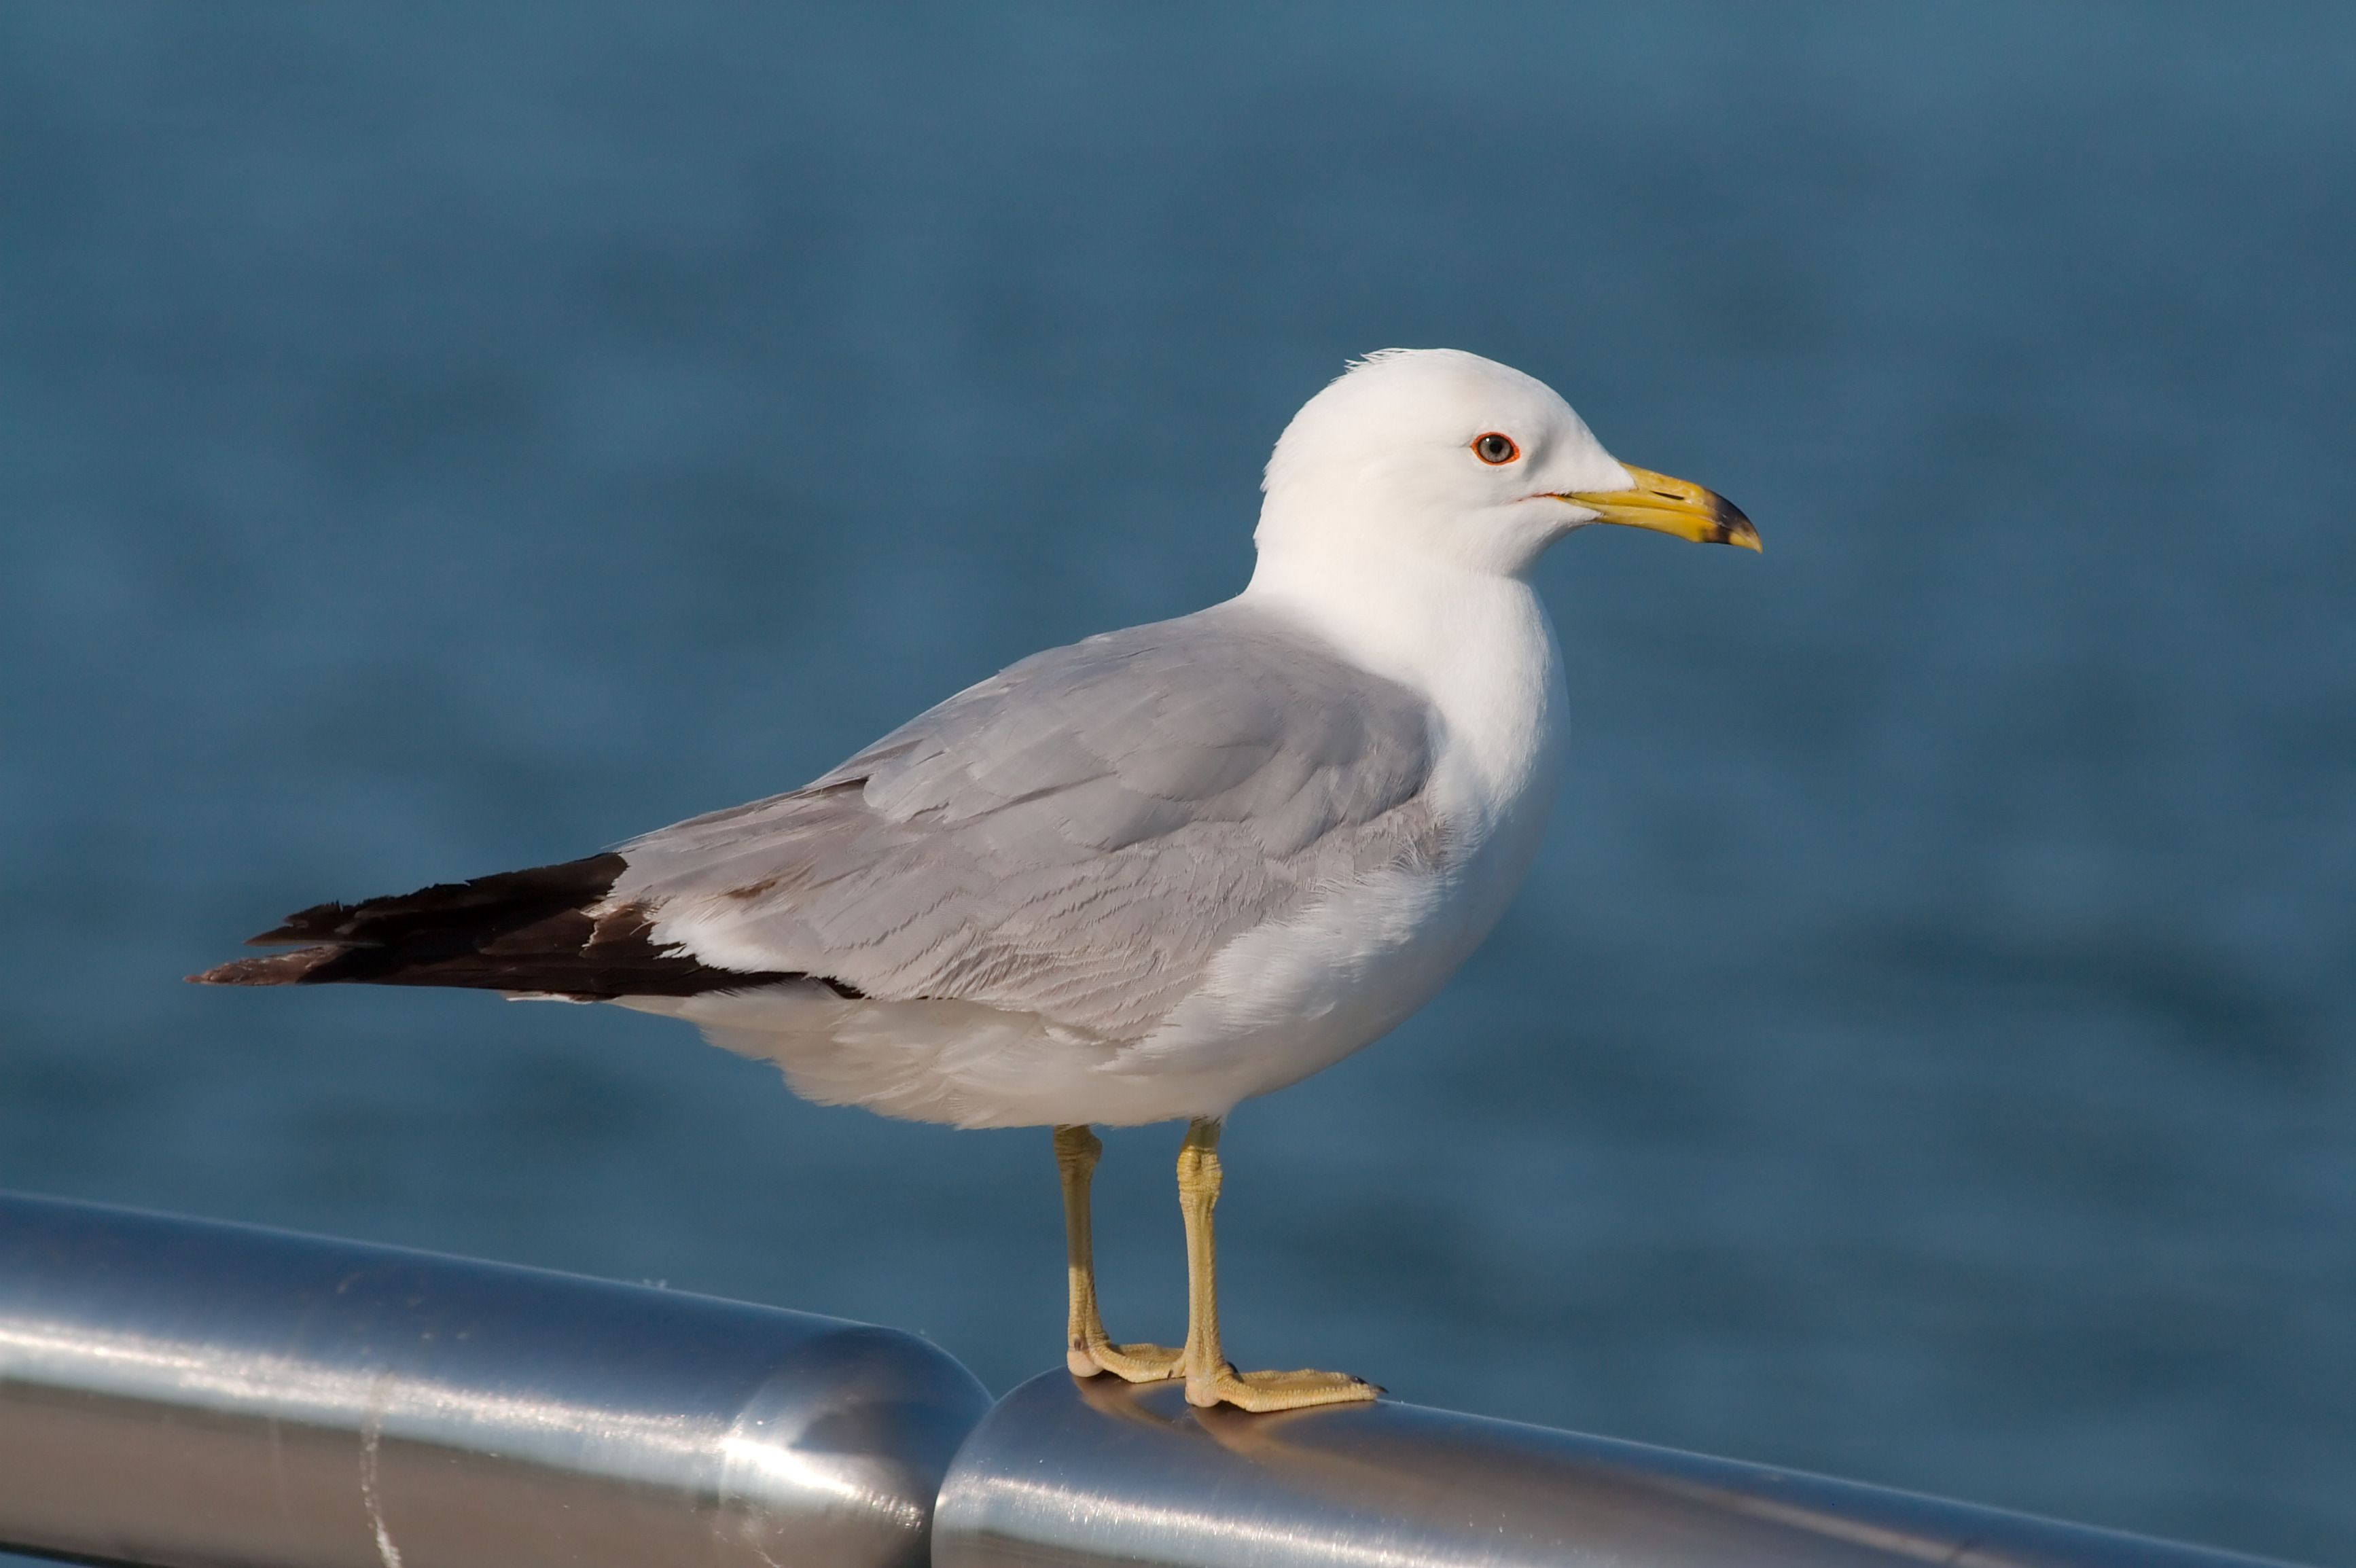 Nova Scotia Power says a seagull was the cause of a power outage in ...